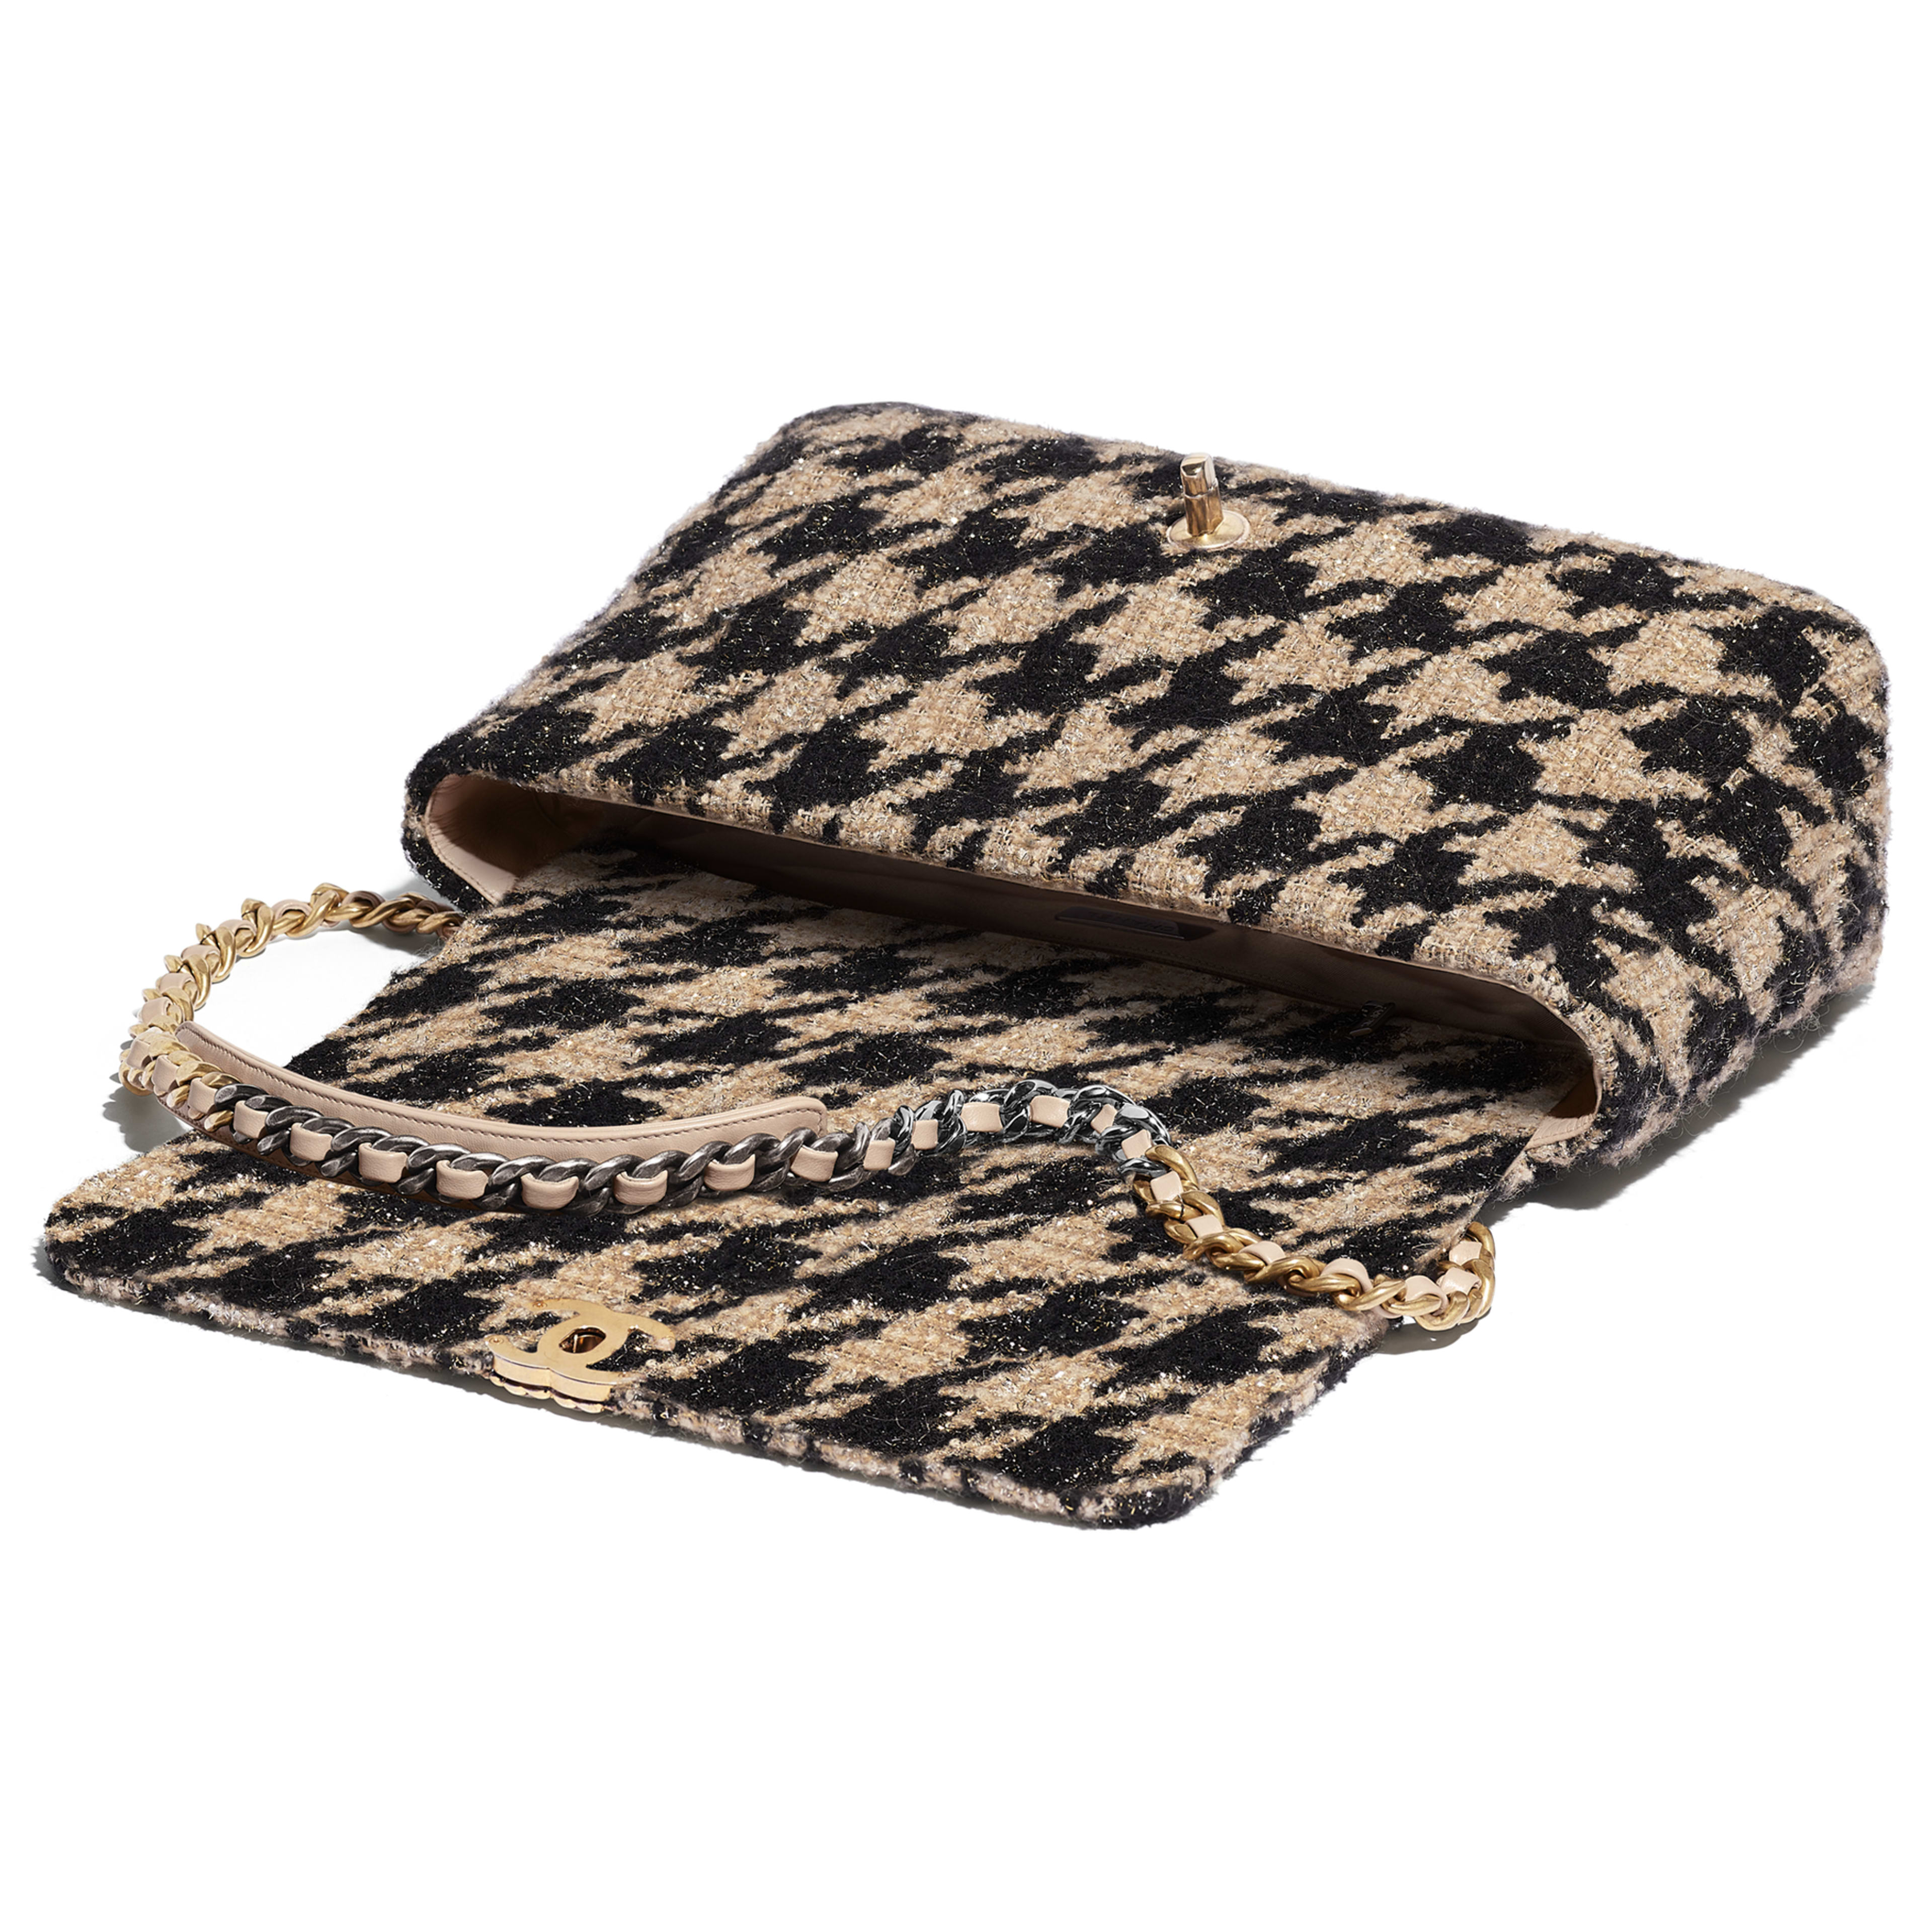 CHANEL 19 Maxi Flap Bag - Beige & Black - Tweed, Gold-Tone, Silver-Tone & Ruthenium-Finish Metal - Other view - see full sized version